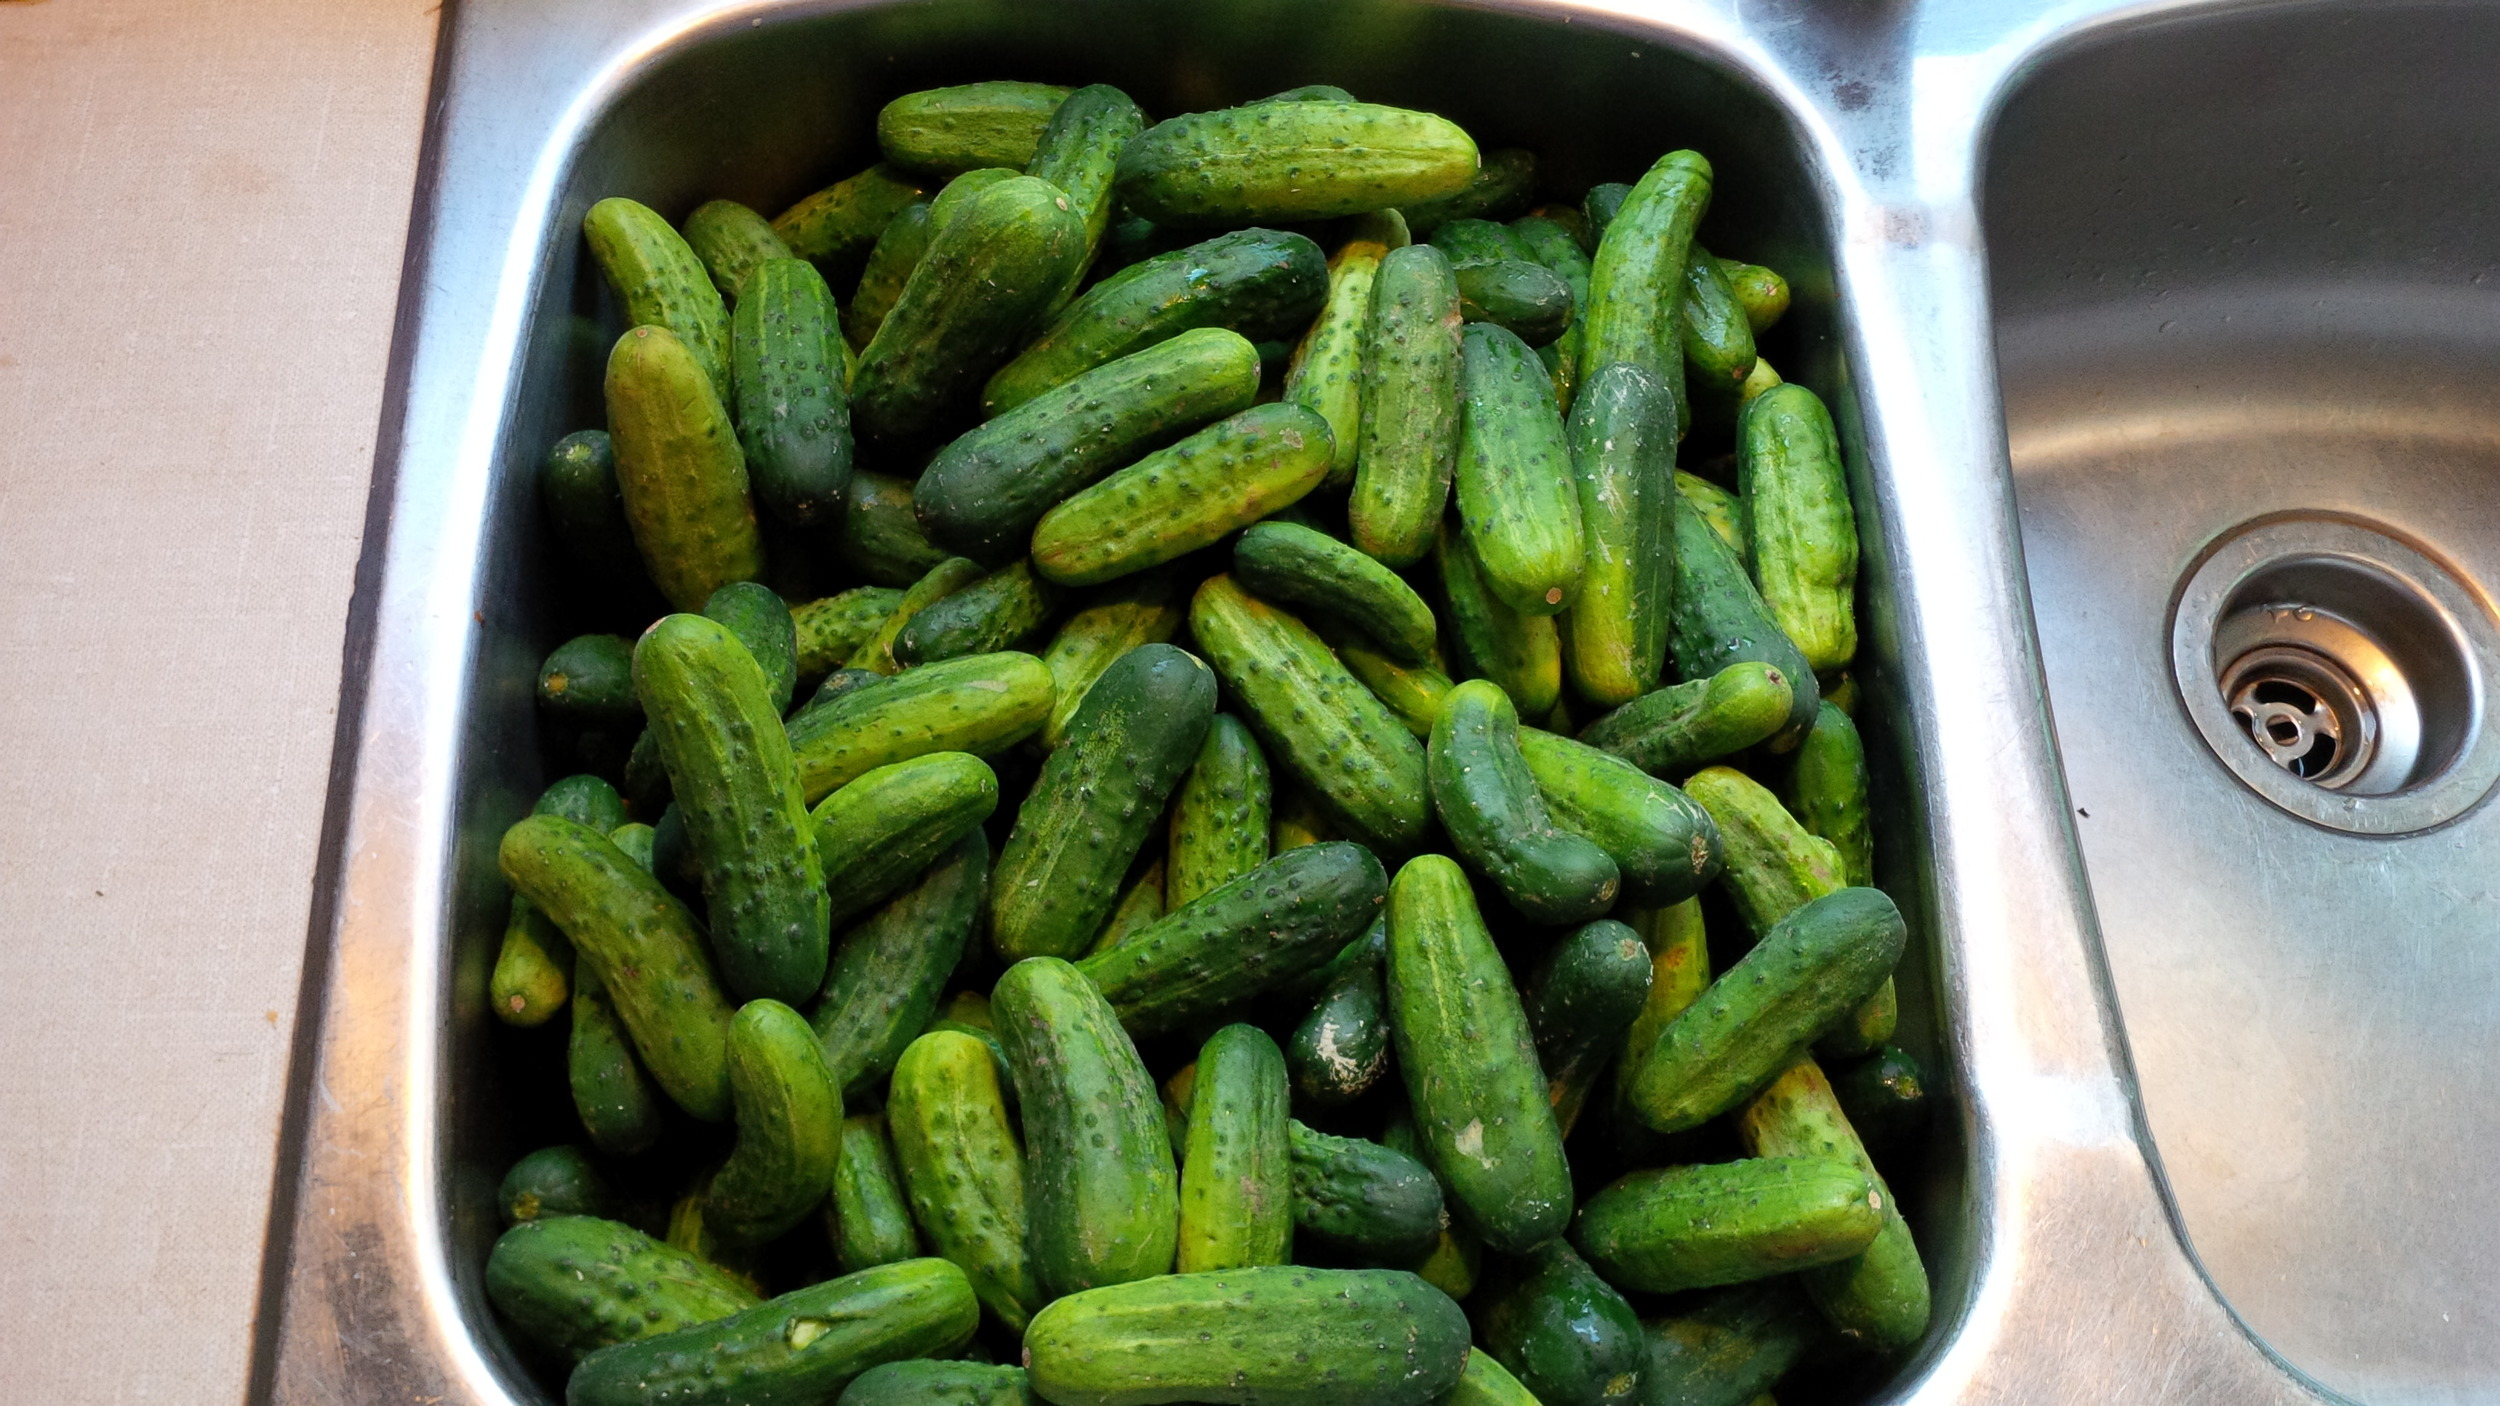 This is what a 1/2 bushel of mini-cucumbers looks like when you haul it home from the Farmers' Market and put them in the sink to wash. I was feeling ambitious. The market tends to do that to me at this time of year.